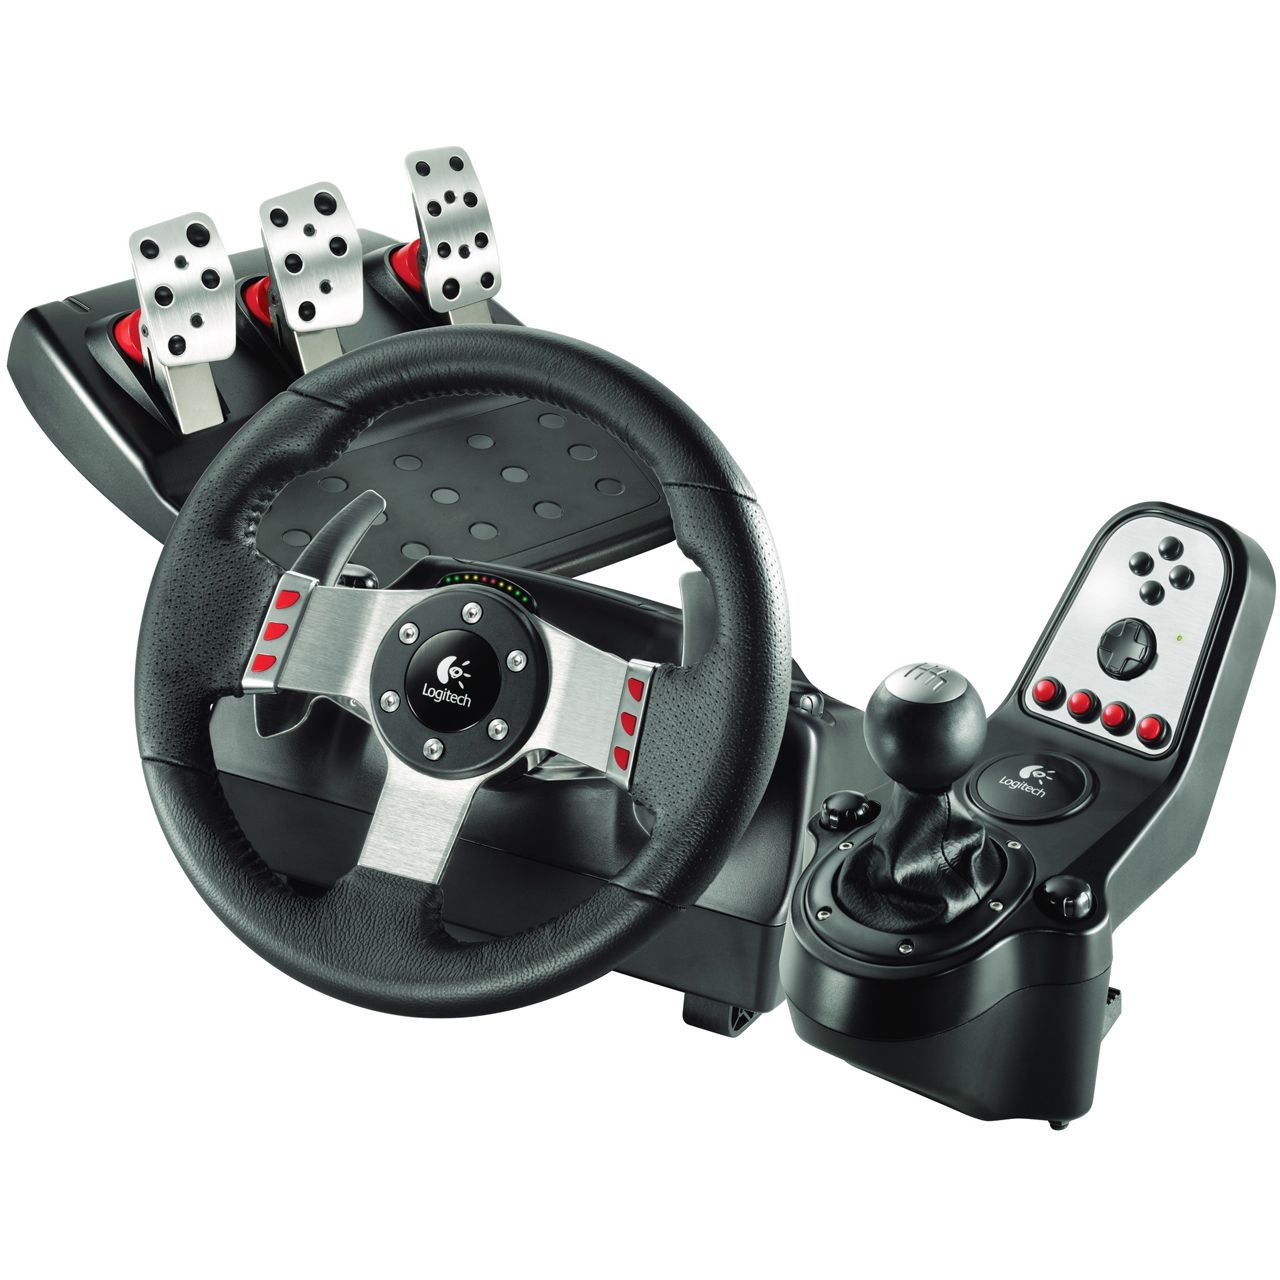 Logitech-G27-Racing-Wheel-941-000046-USB-schwarz-PC-PS2-PS3